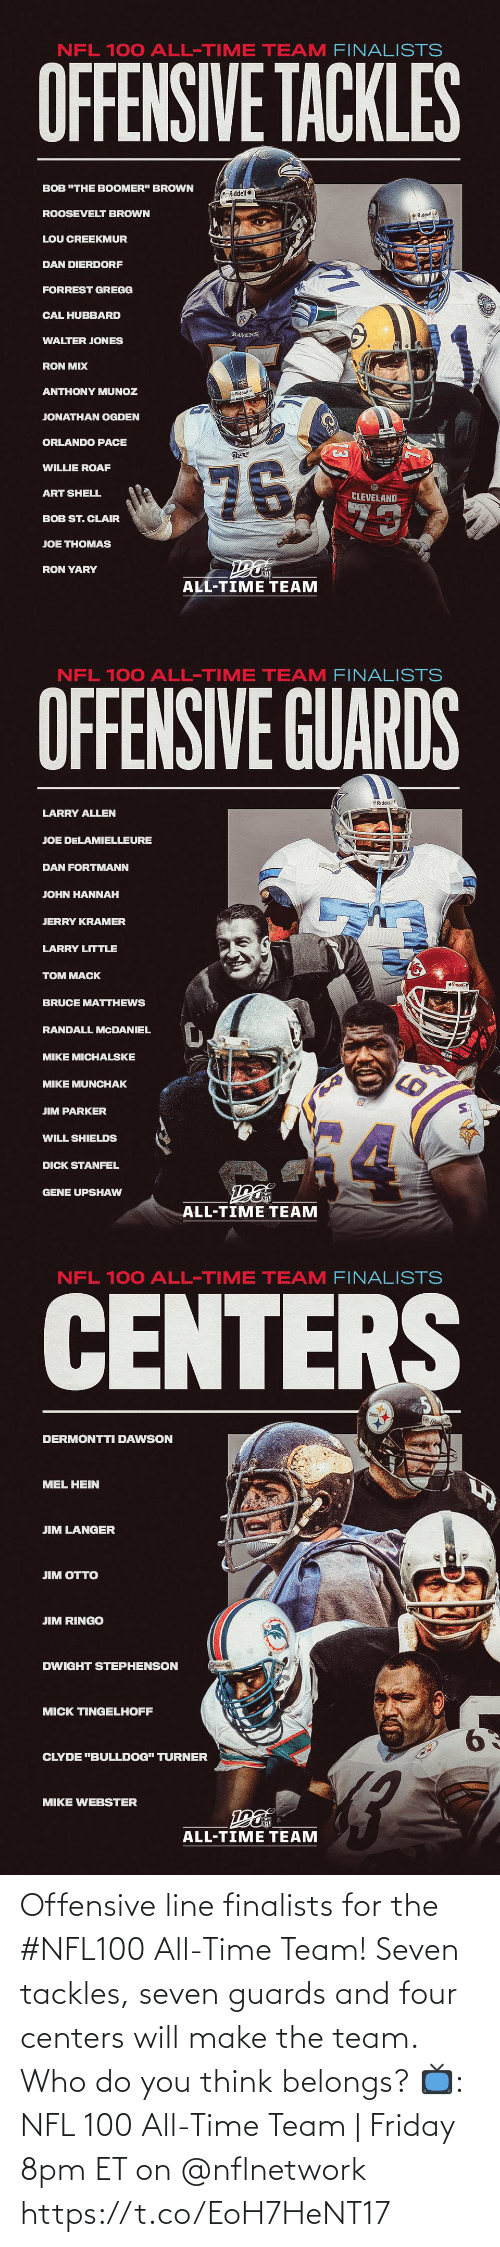 "hannah: NFL 100 ALL-TIME TEAM FINALISTS  OFFENSIVE TACKLES  BOB ""THE BOOMER"" BROWN  Riddel  ROOSEVELT BROWN  O Riddell  LOU CREEKMUR  DAN DIERDORF  FORREST GREGG  CAL HUBBARD  RAVENS  WALTER JONES  RON MIX  ANTHONY MUNOZ  Riddell  JONATHAN OGDEN  ORLANDO PACE  Rams  76  WILLIE ROAF  ART SHELL  CLEVELAND  73  BOB ST. CLAIR  JOE THOMAS  RON YARY  ALL-TIME TEAM   NFL 100 ALL-TIME TEAM FINALISTS  OFFENSIVE GUARDS  Riddel  LARRY ALLEN  JOE DELAMIELLEURE  DAN FORTMANN  JOHN HANNAH  JERRY KRAMER  LARRY LITTLE  TOM MACK  BRUCE MATTHEWS  RANDALL MCDANIEL  MIKE MICHALSKE  MIKE MUNCHAK  JIM PARKER  WILL SHIELDS  DICK STANFEL  GENE UPSHAW  ALL-TIME TEAM   NFL 100 ALL-TIME TEAM FINALISTS  CENTERS  DERMONTTI DAWSON  MEL HEIN  JIM LANGER  ЛM OТTO  JIM RINGO  DWIGHT STEPHENSON  MICK TINGELHOFF  9.  CLYDE ""BULLDOG"" TURNER  MIKE WEBSTER  ALL-TIME TEAM Offensive line finalists for the #NFL100 All-Time Team!  Seven tackles, seven guards and four centers will make the team. Who do you think belongs?  📺: NFL 100 All-Time Team 